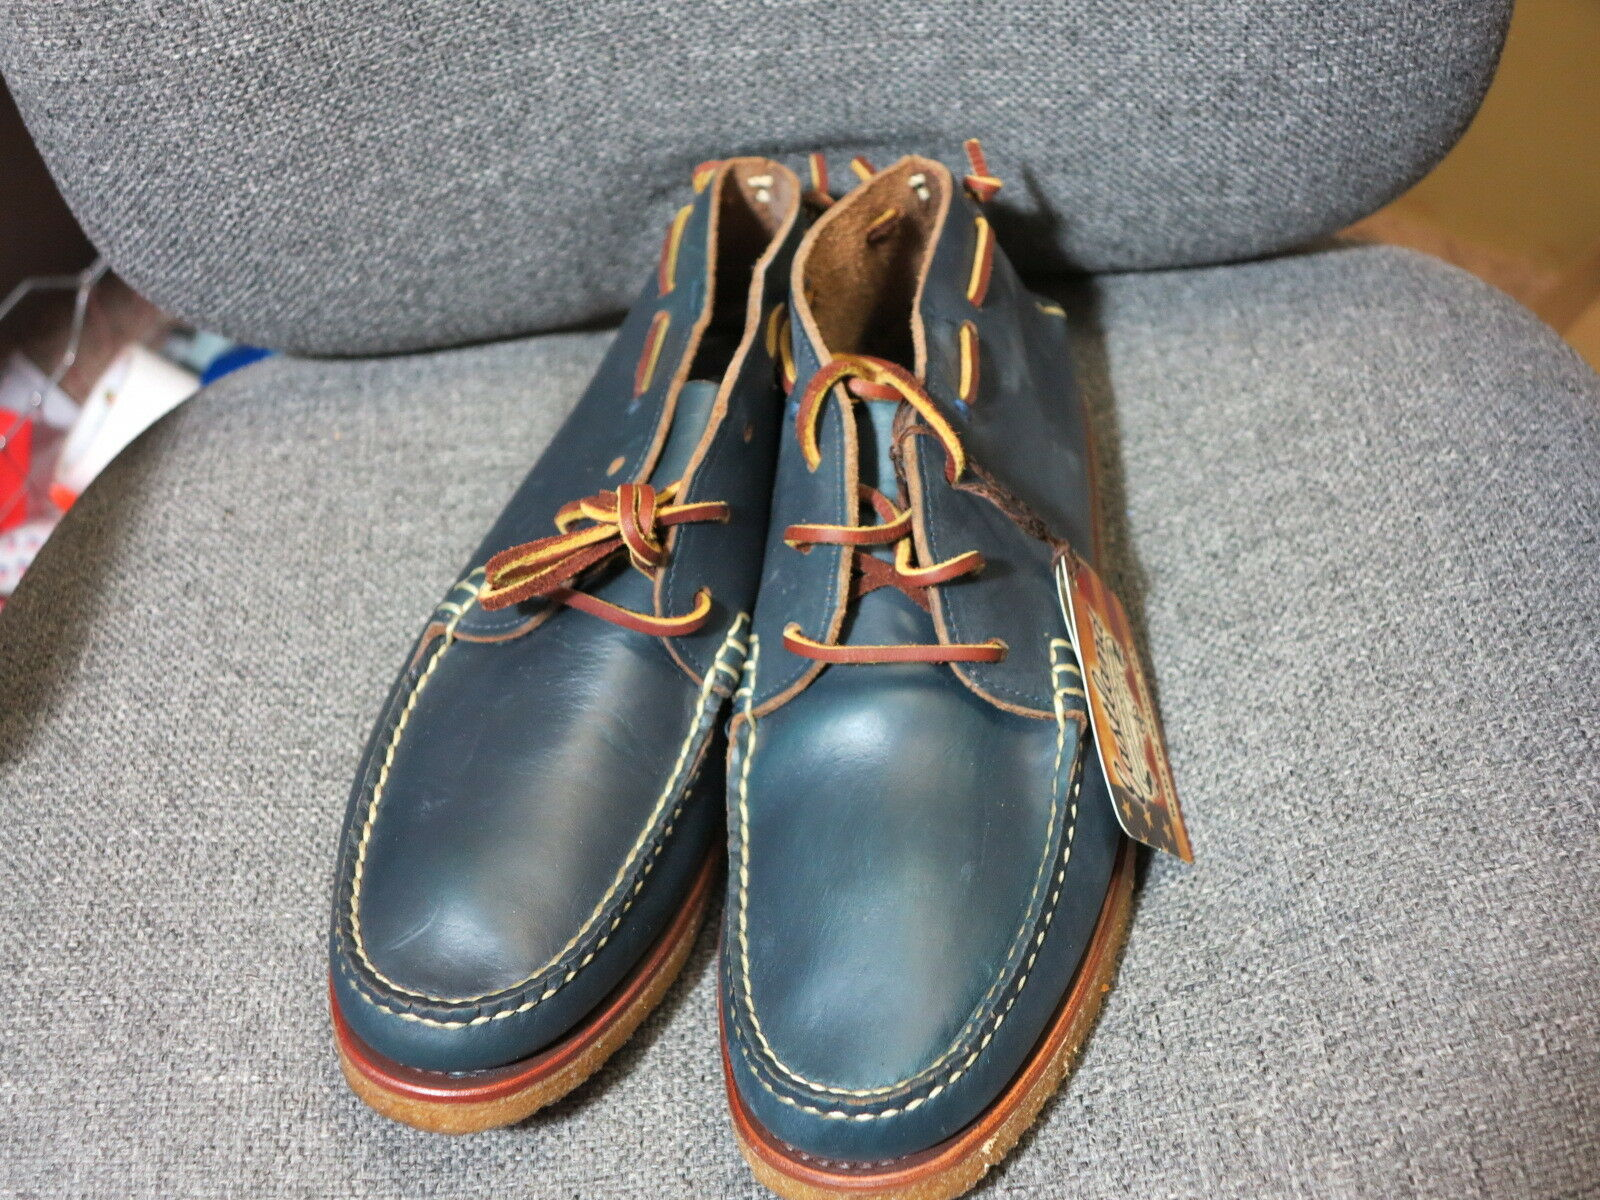 Eastland Millinocket Millinocket Millinocket chukka Stiefel navy 9 10  Freeport Maine made in usa rancourt f4ed6d